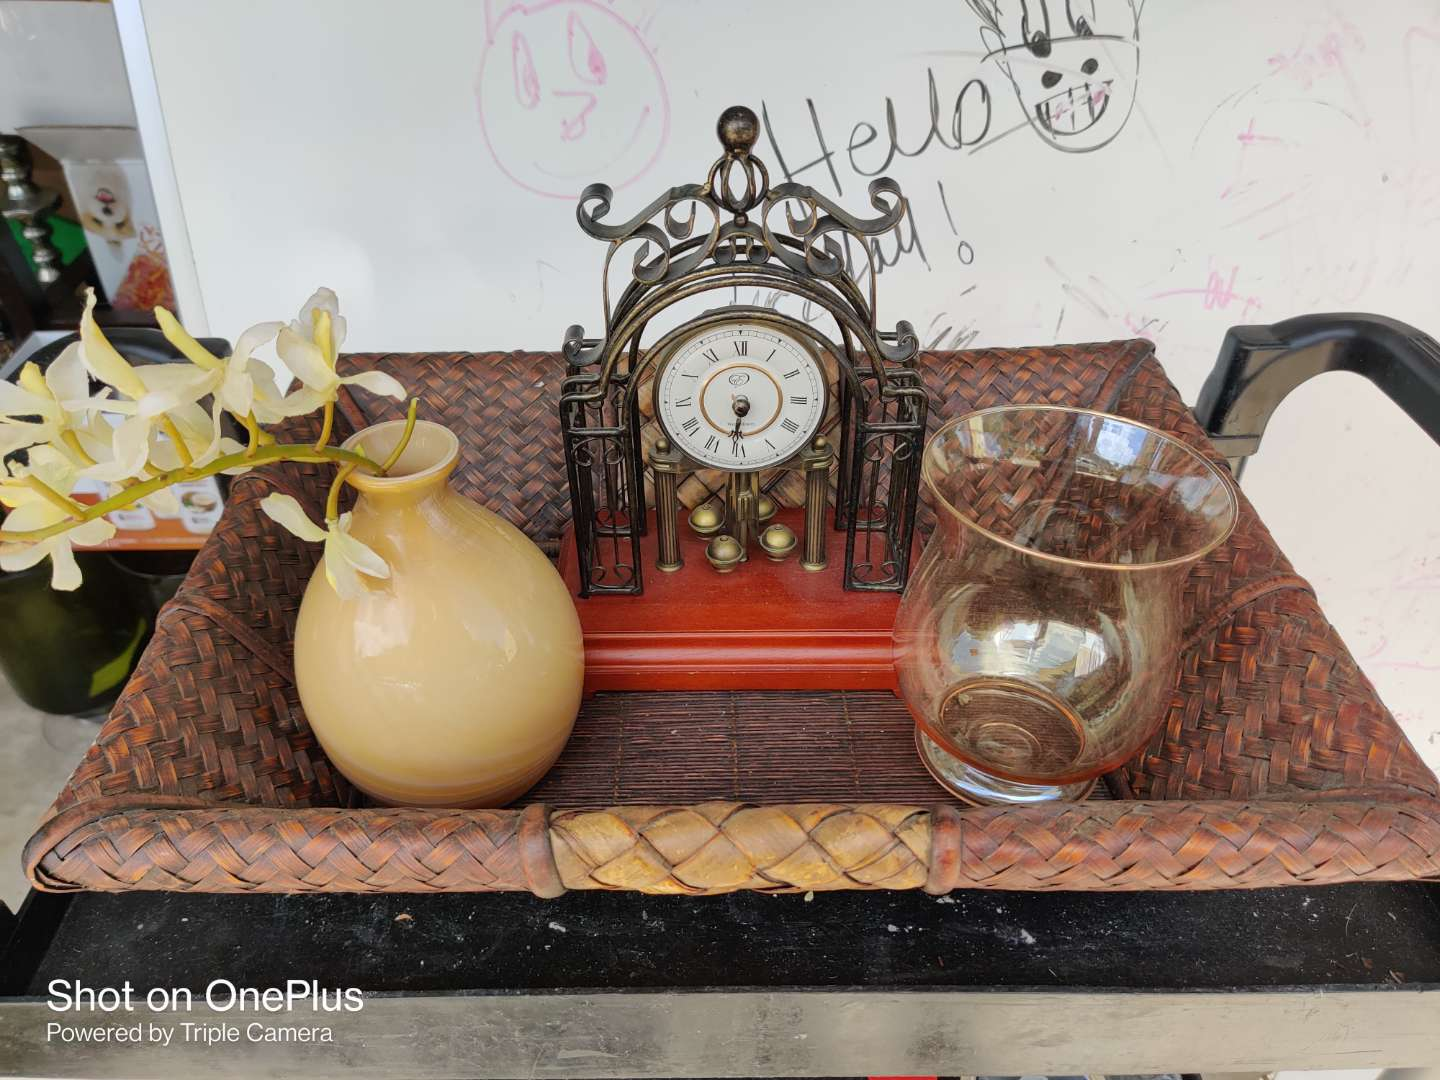 469 four pieces clock two vases and a basket